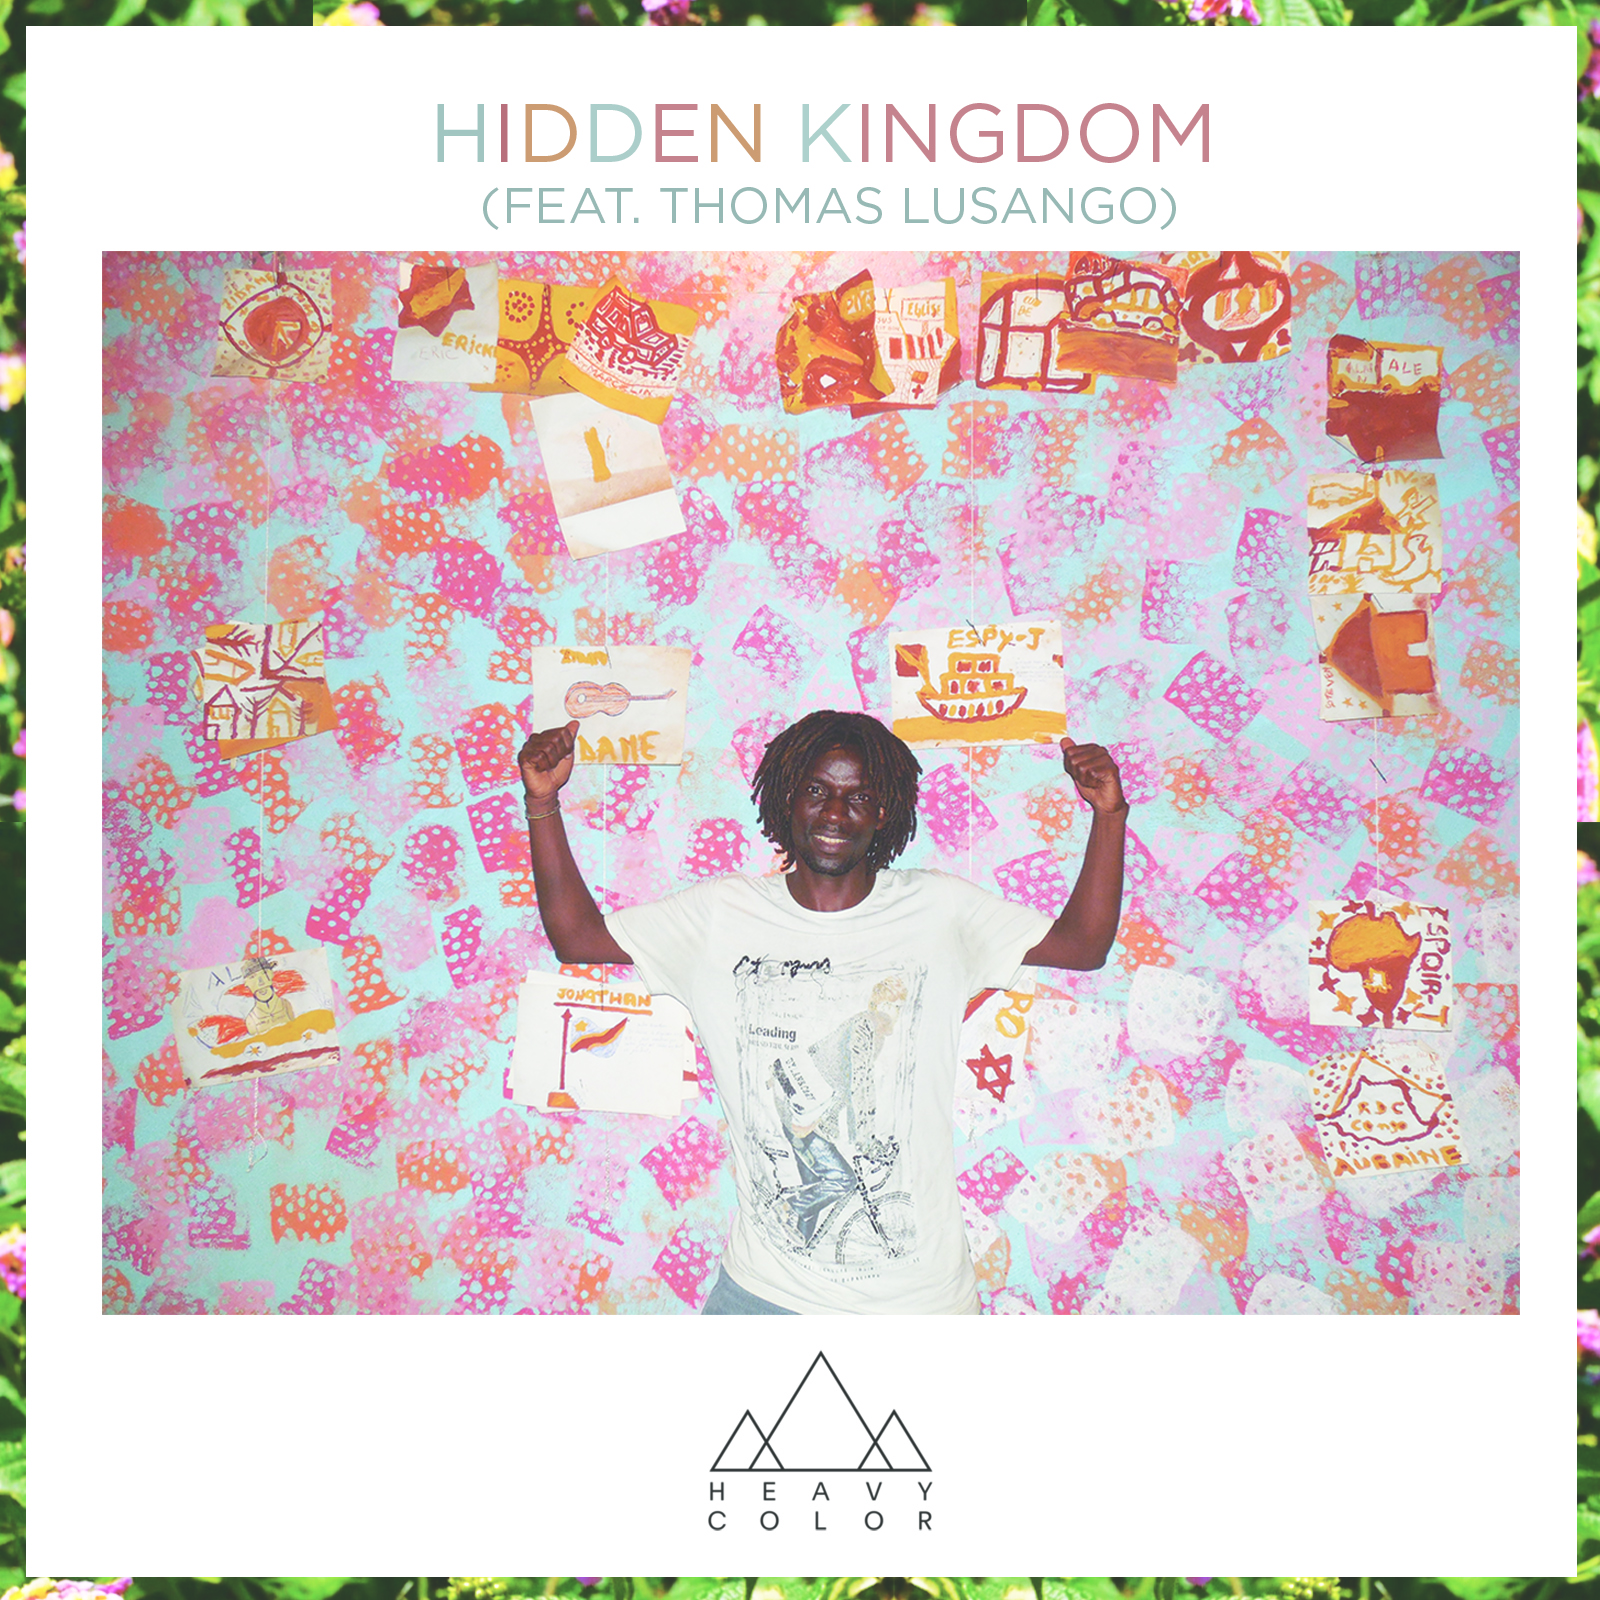 Hidden Kingdom Single available at www.heavycolor.bandcamp.com featuring Thomas Lusango on the cover.